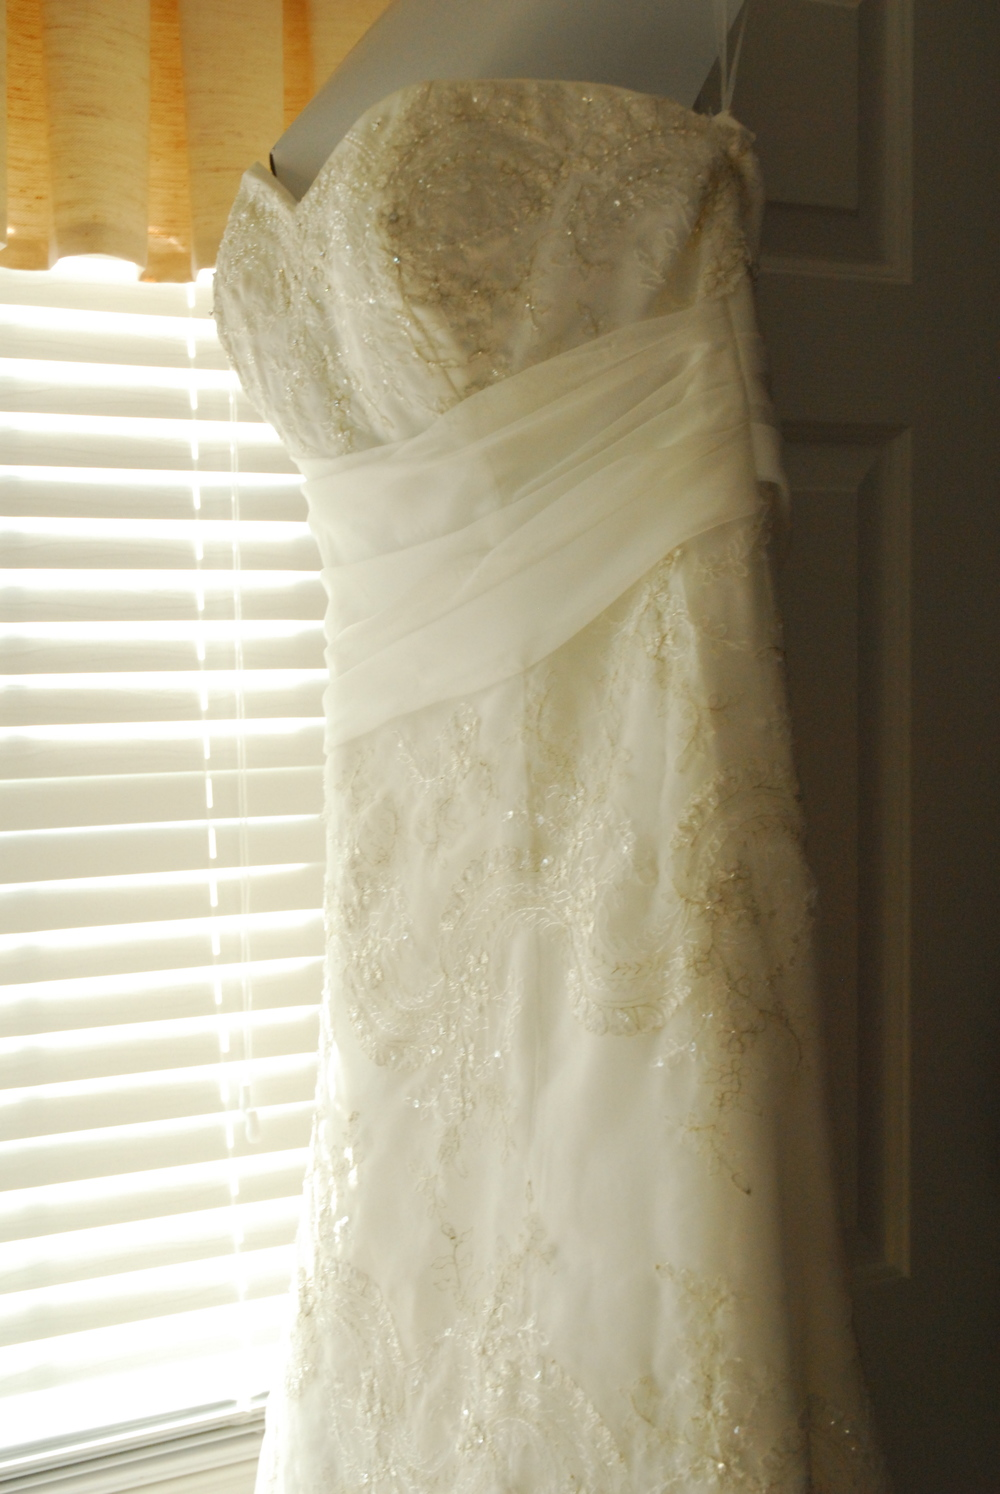 A photo of my wedding gown in 2008. I worked with this wonderful woman who helped to bring my vision to life. It took a lot of trust, but it worked out great!